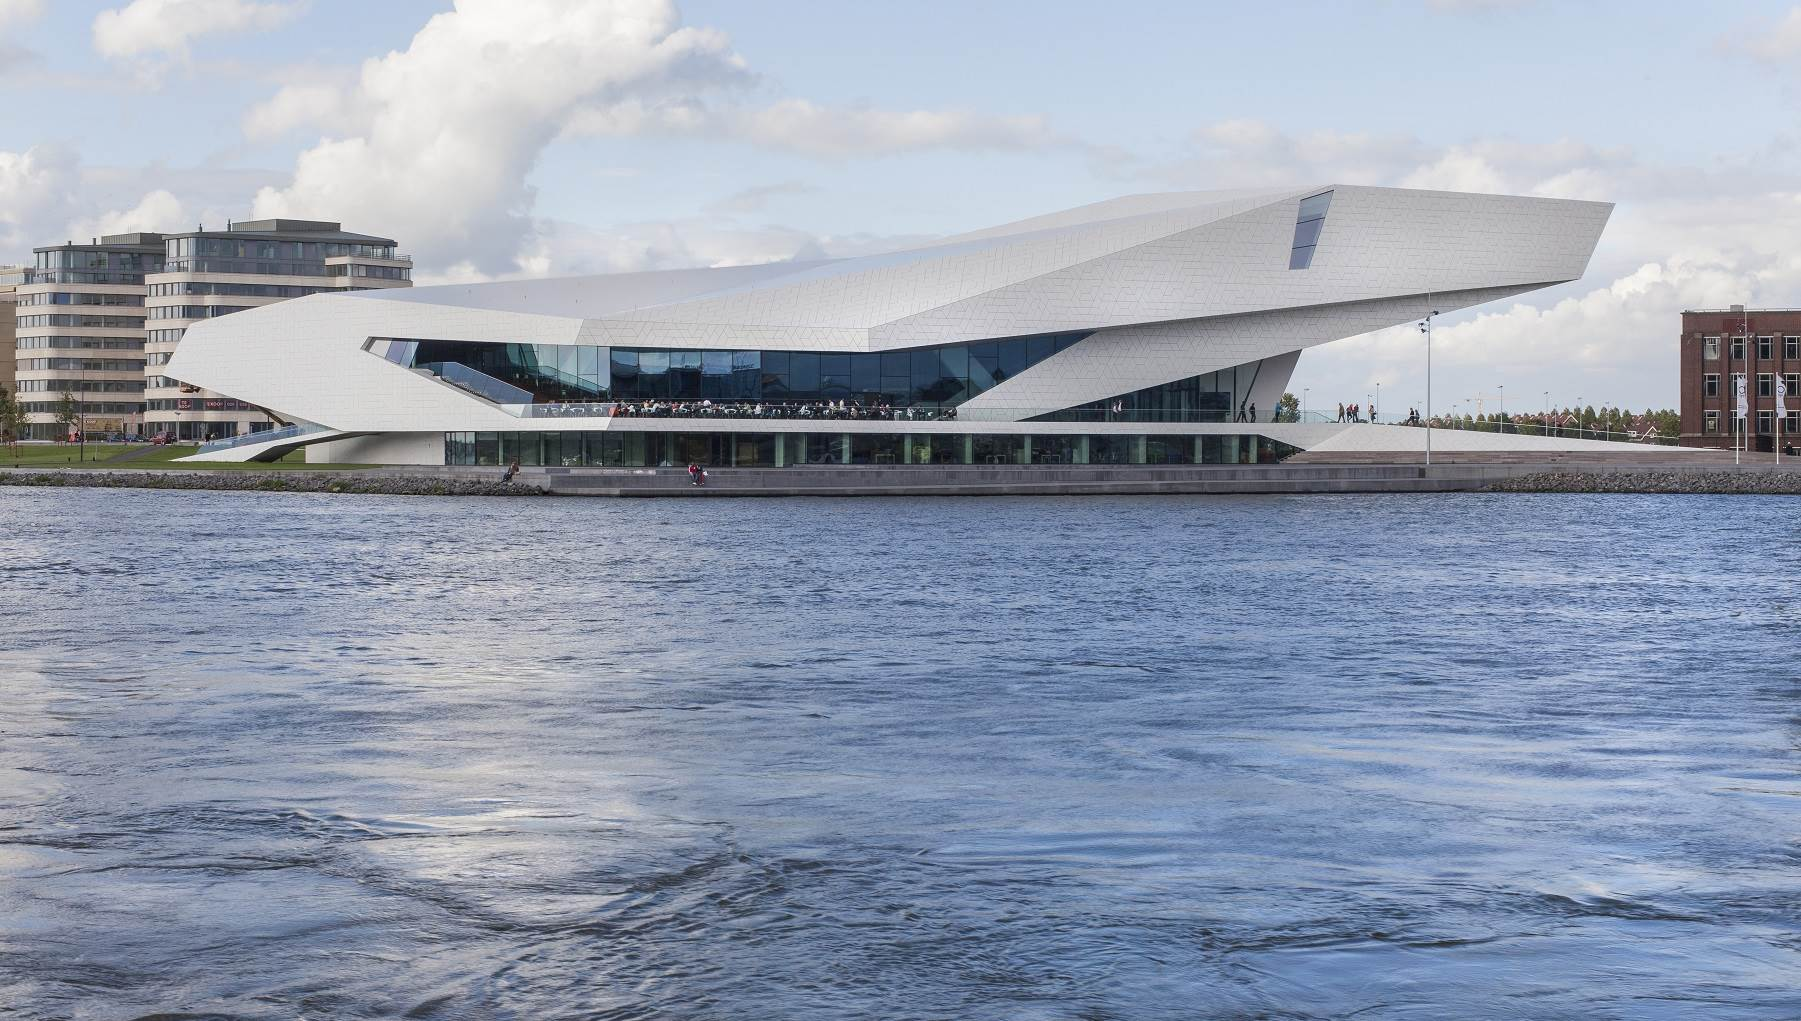 EYE Amsterdam by Denis Guzzo via EYE beeldmateriaal pers